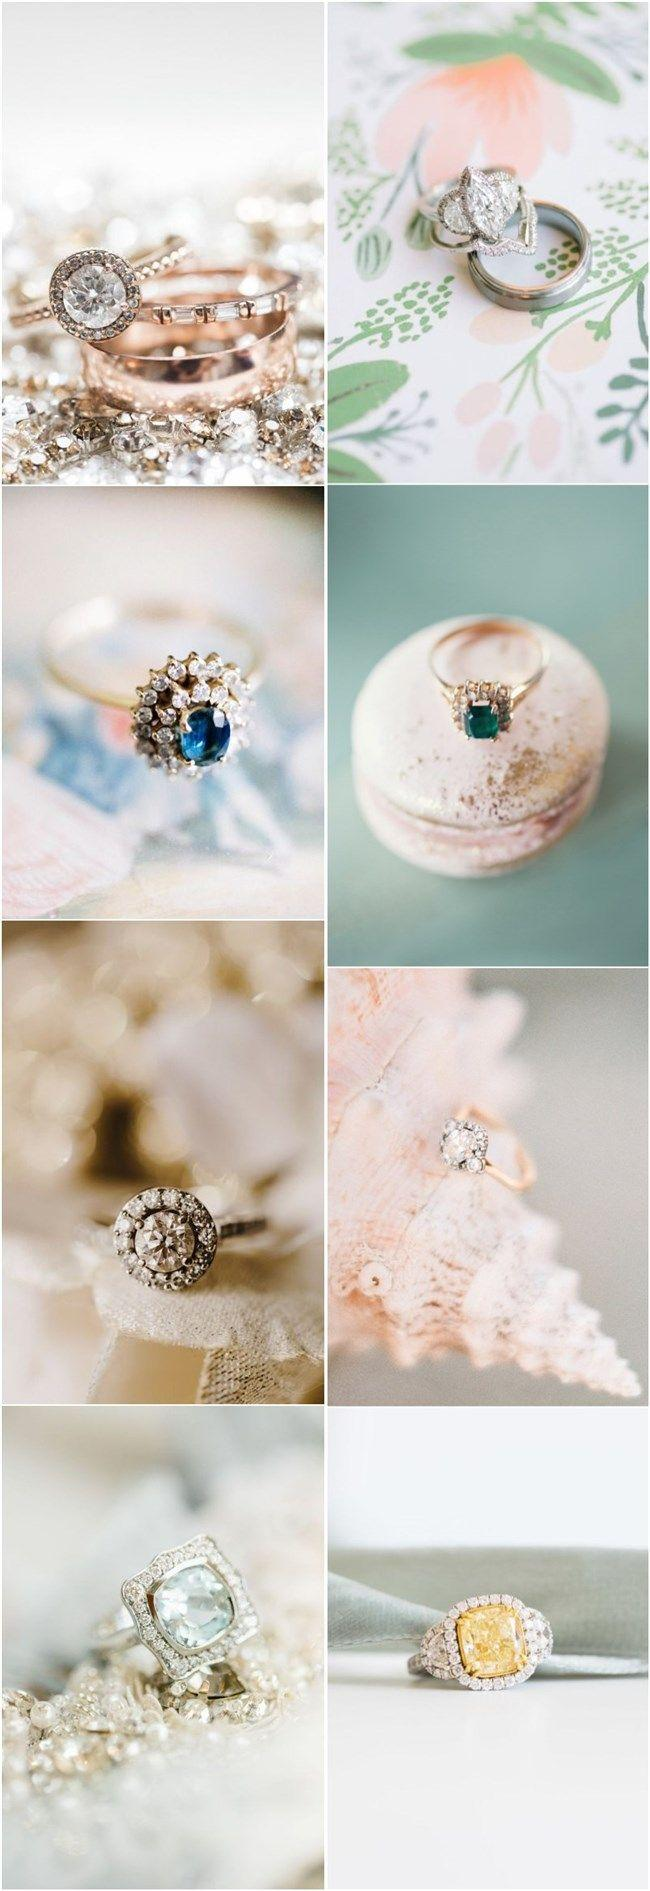 Wedding - Top 20 Vintage Engagement Rings YOU Secretly Want